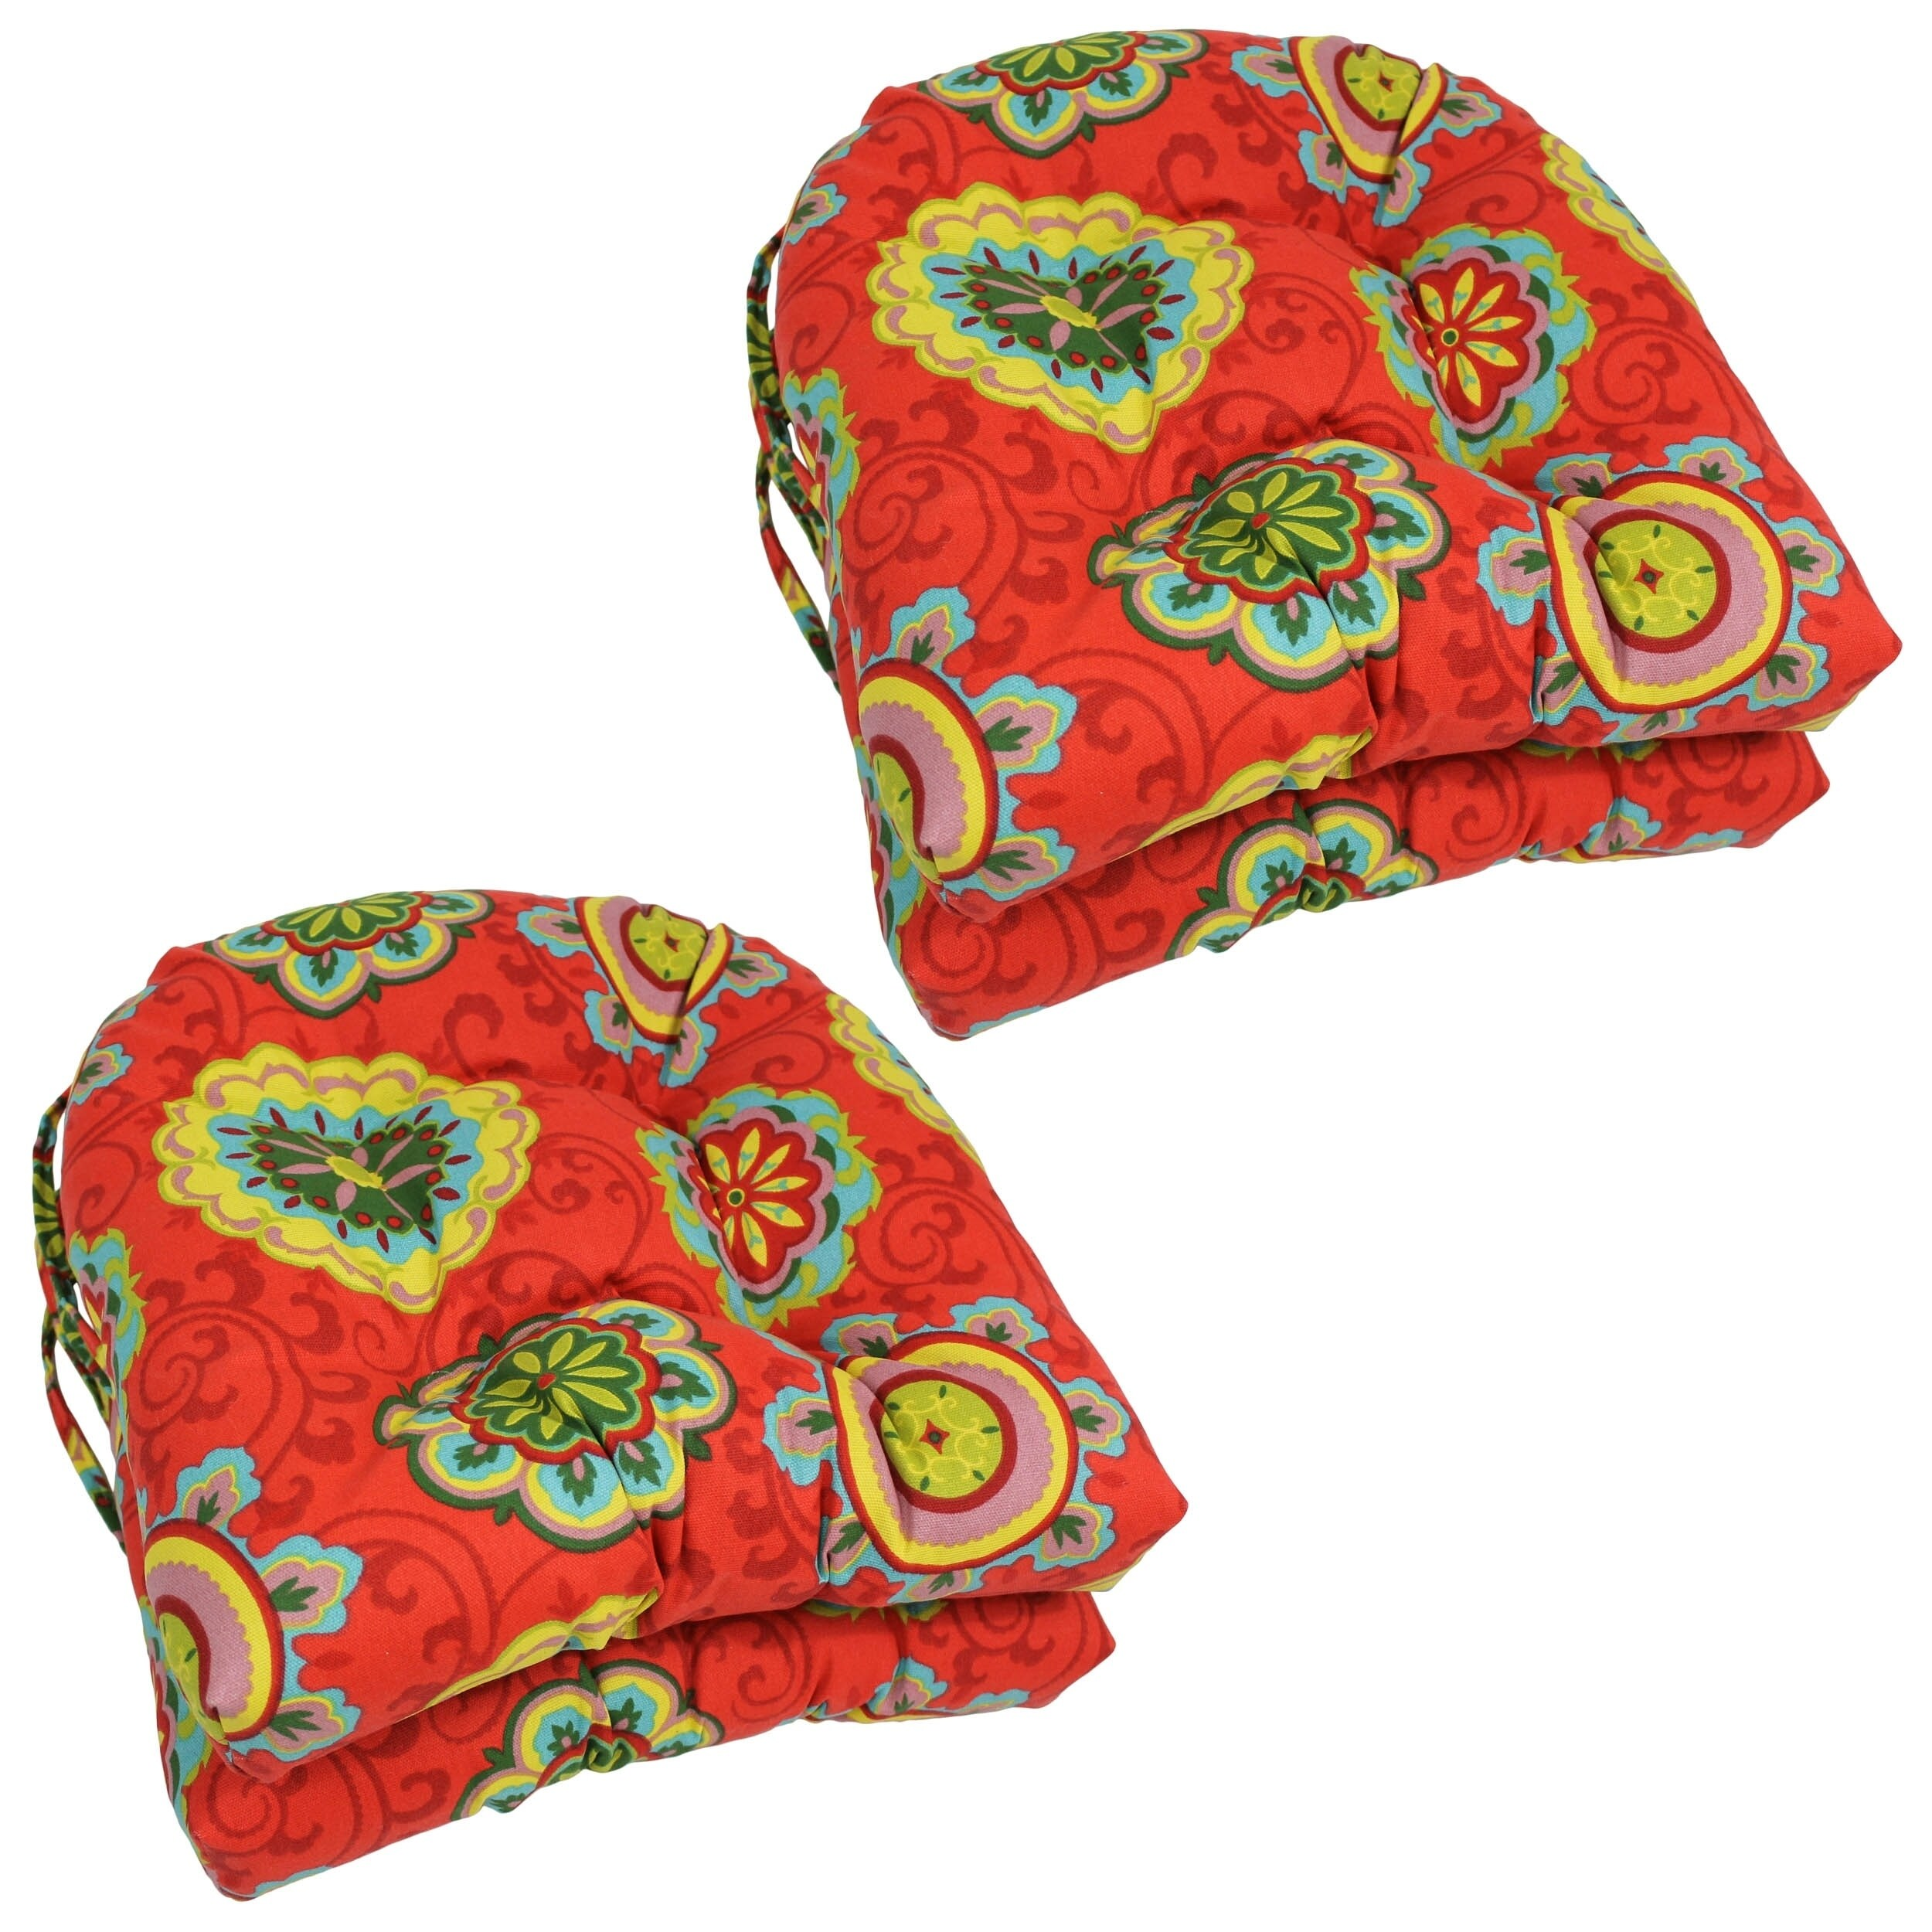 Superieur Blazing Needles U Shaped Outdoor Chair Cushions Set